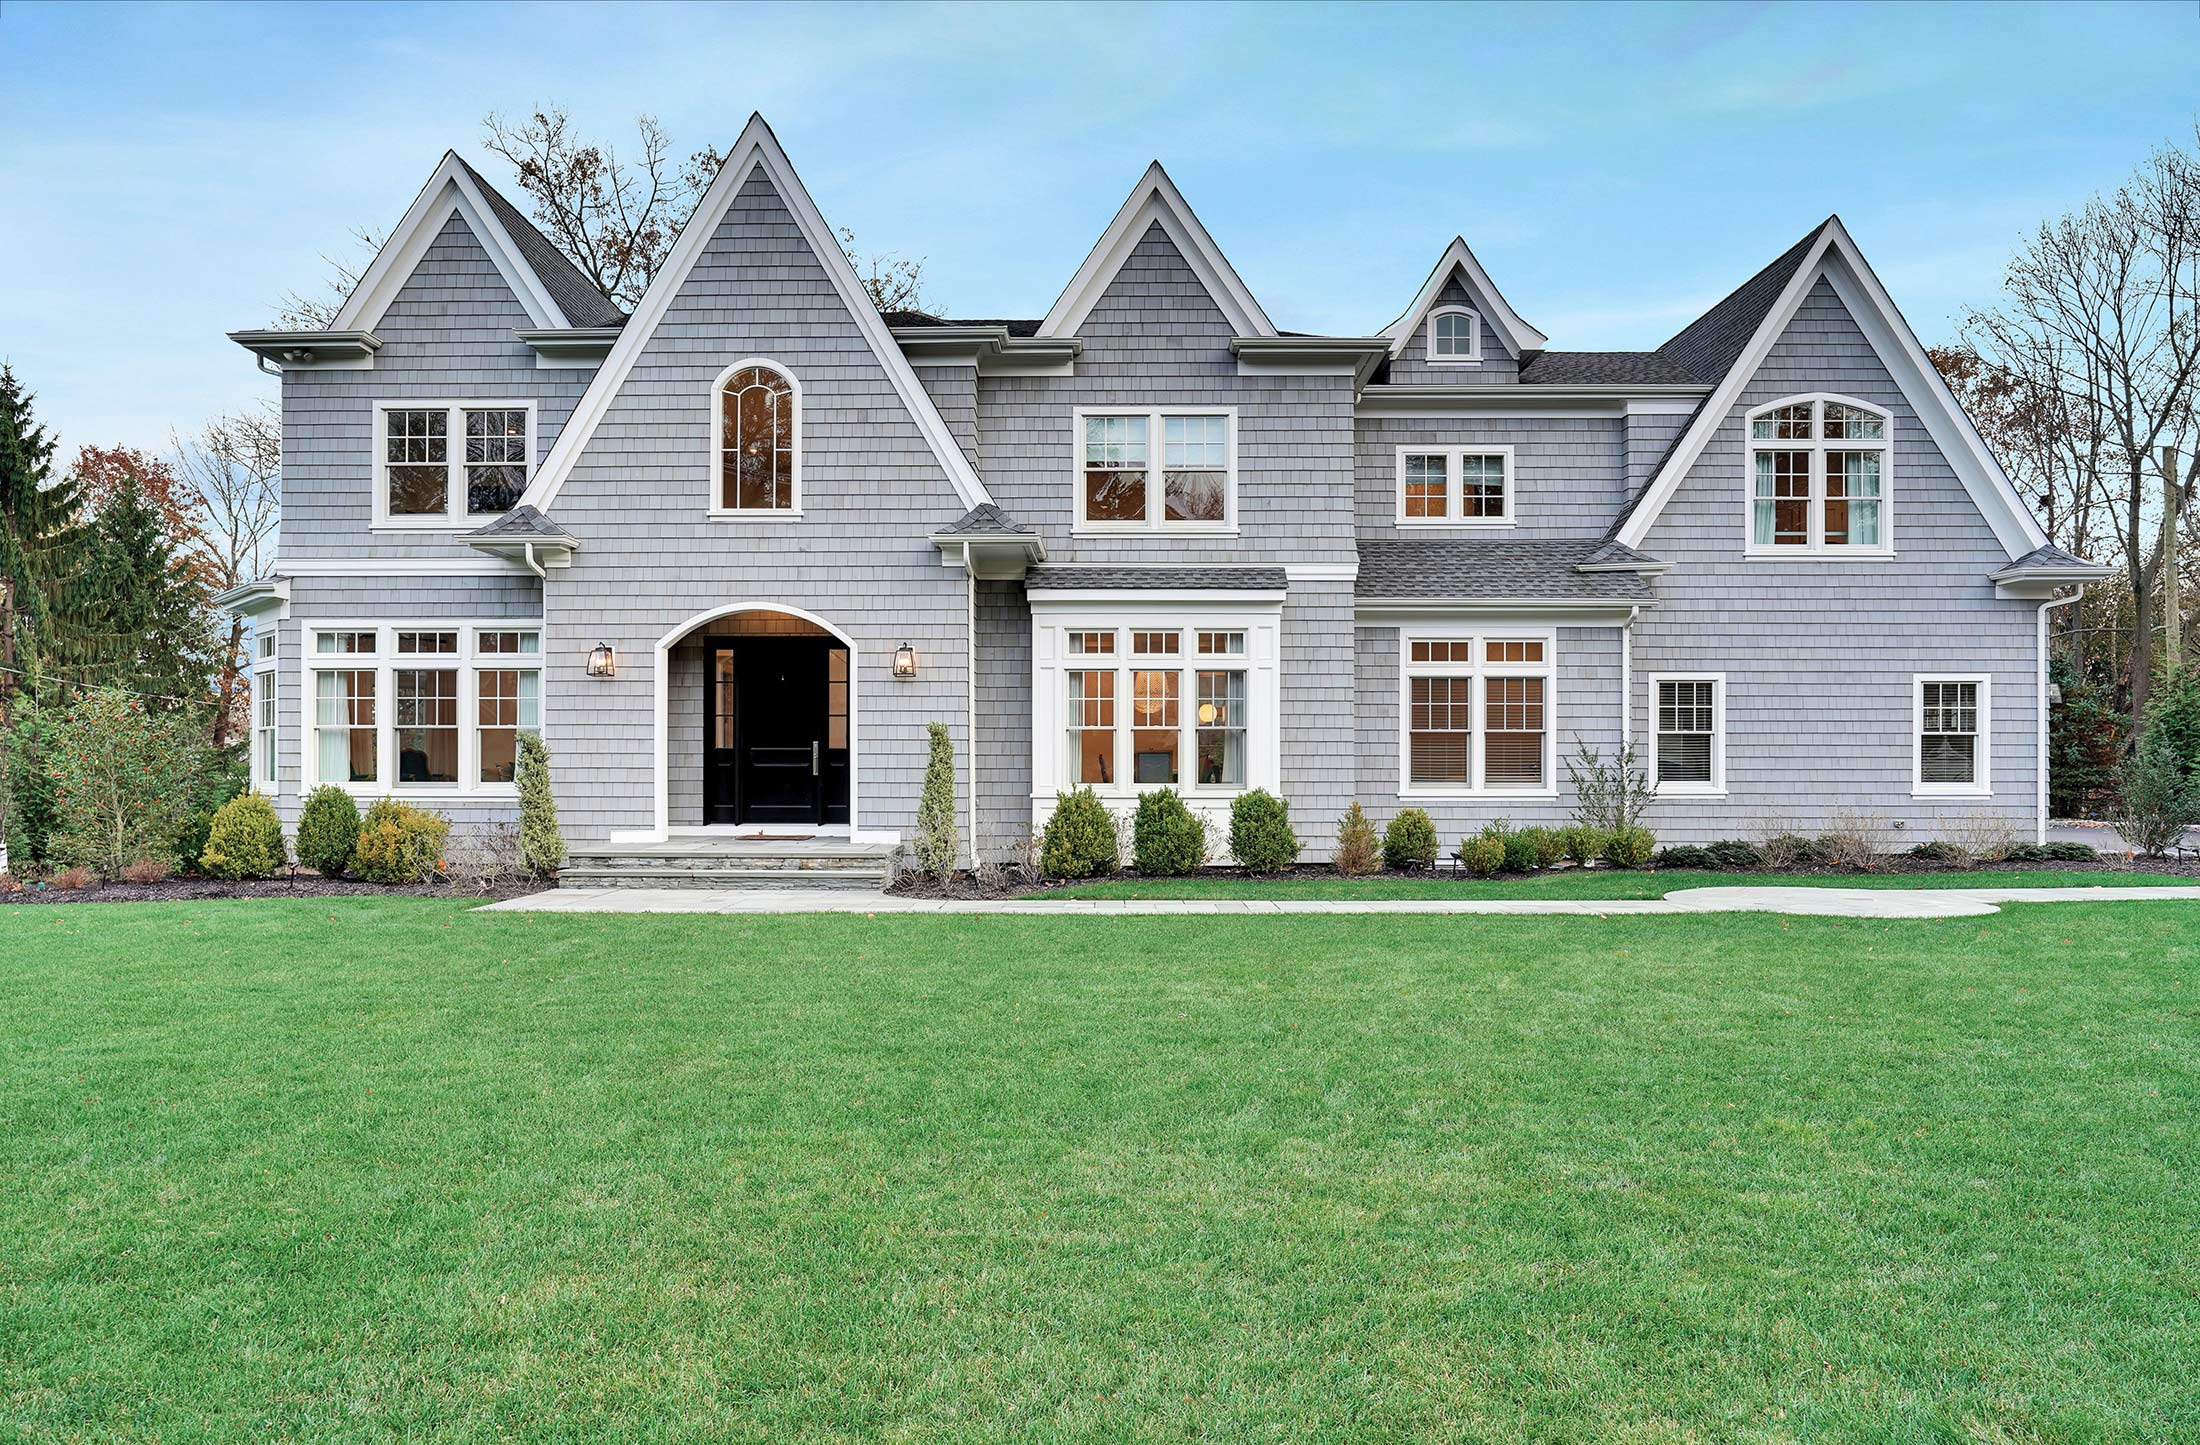 Suburban N J Homes Headed For Biggest Price Increase Since 2005 Bloomberg